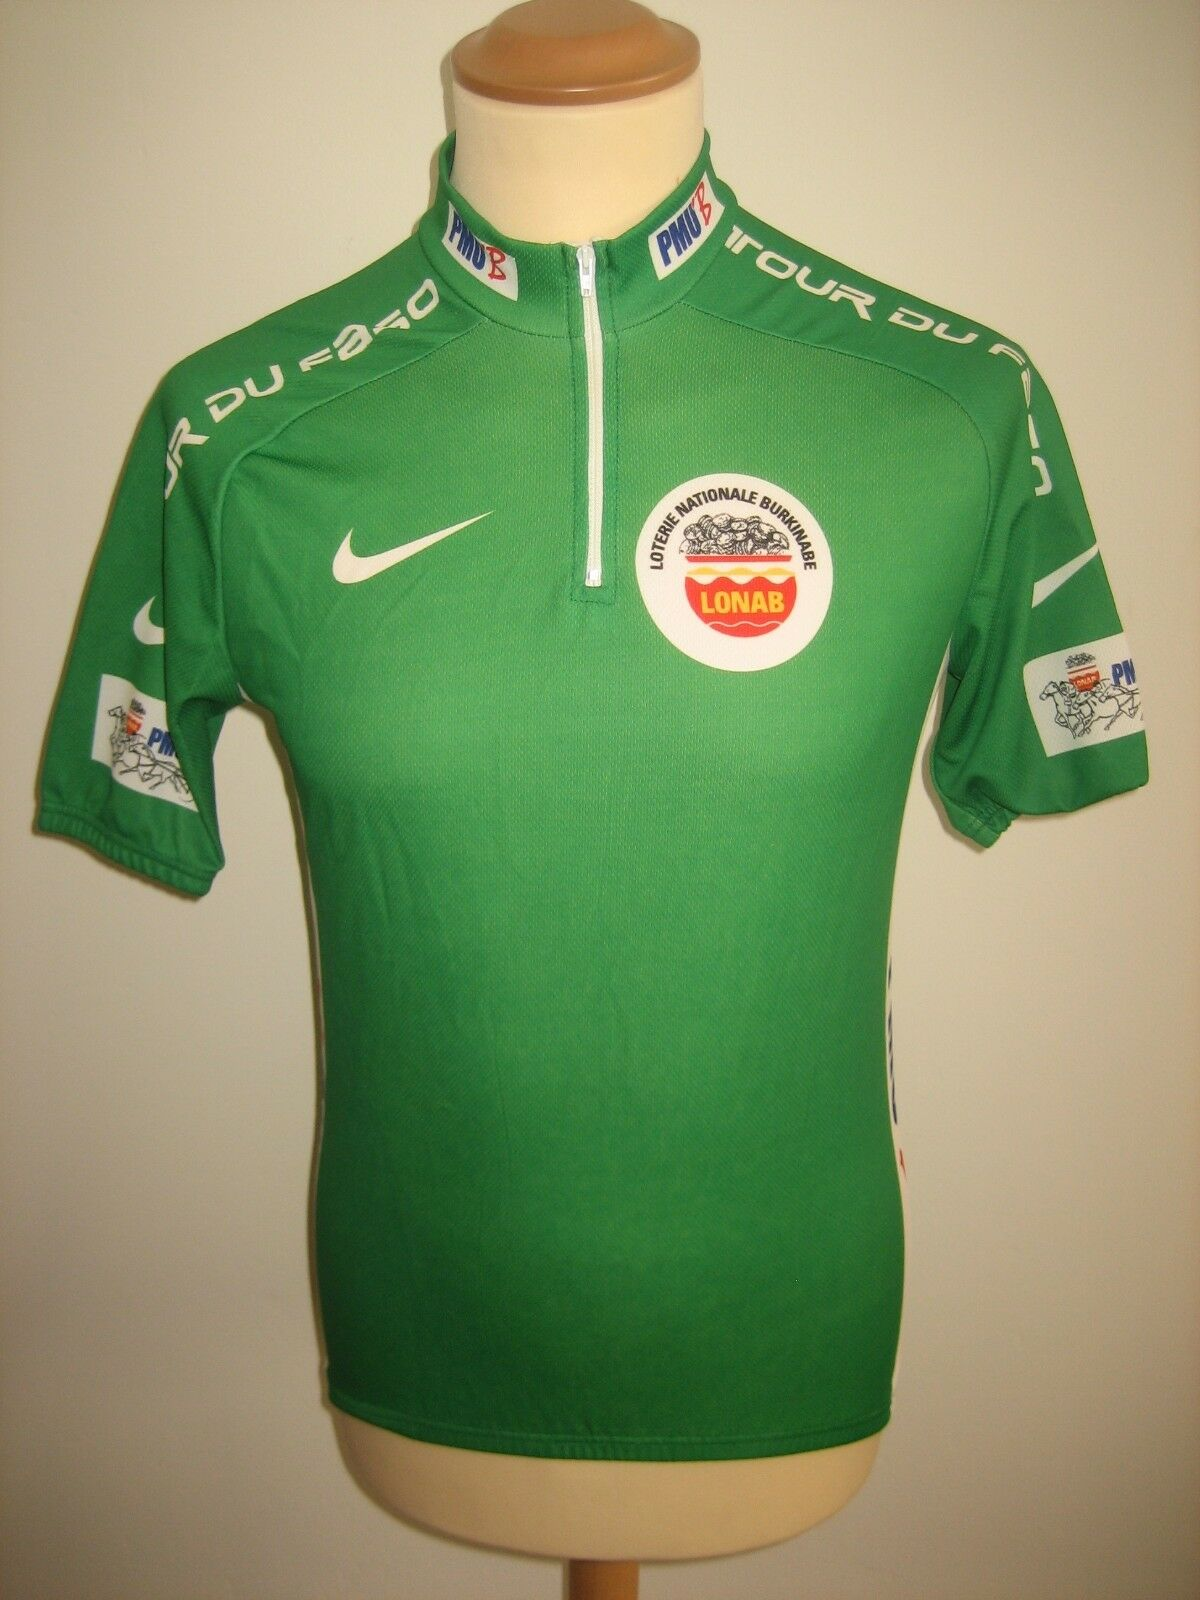 Tour du Faso green jersey  rare shirt cycling maillot trikot Africa size S  fast shipping to you